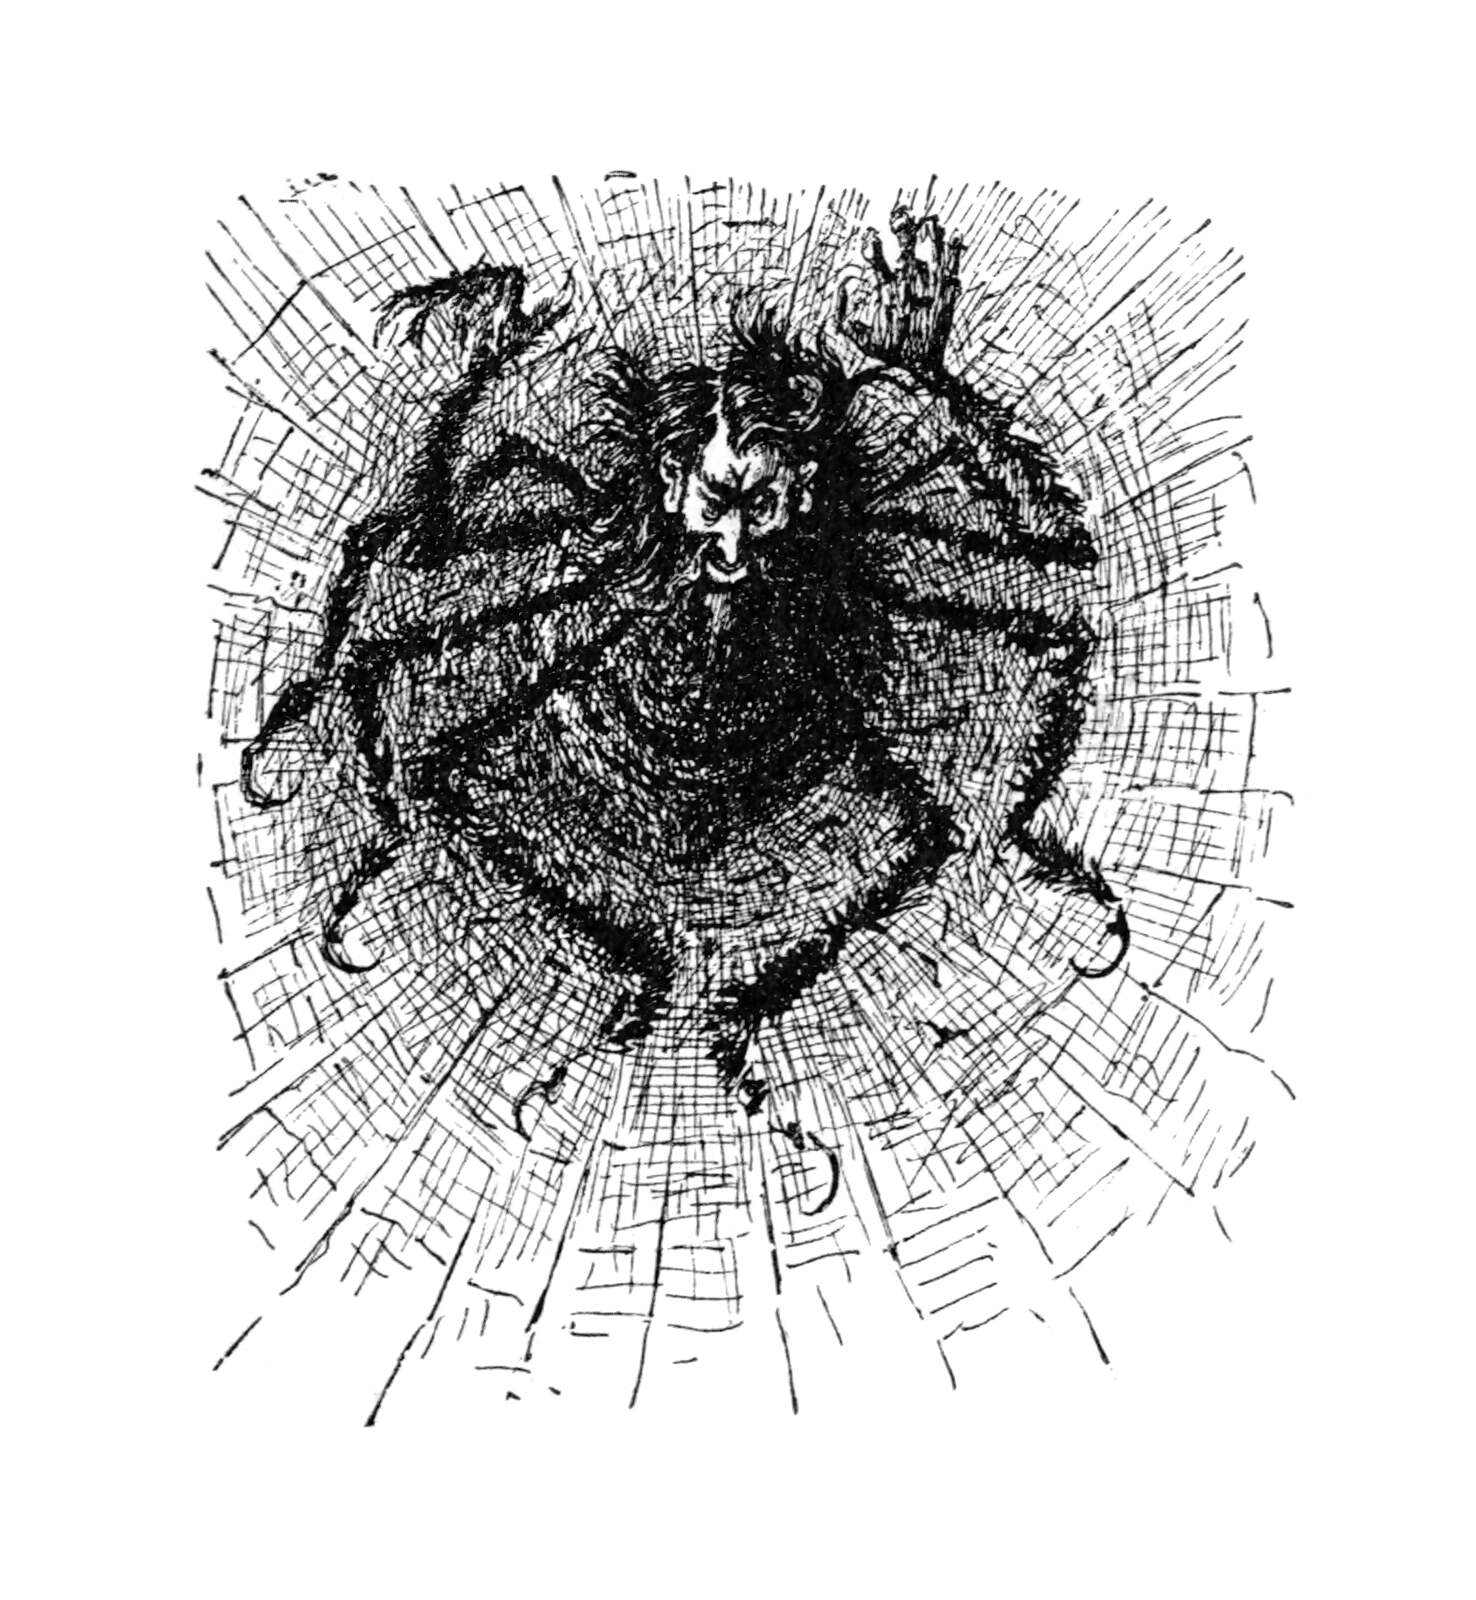 File:Svengali as a spider in his web.jpg - Wikipedia